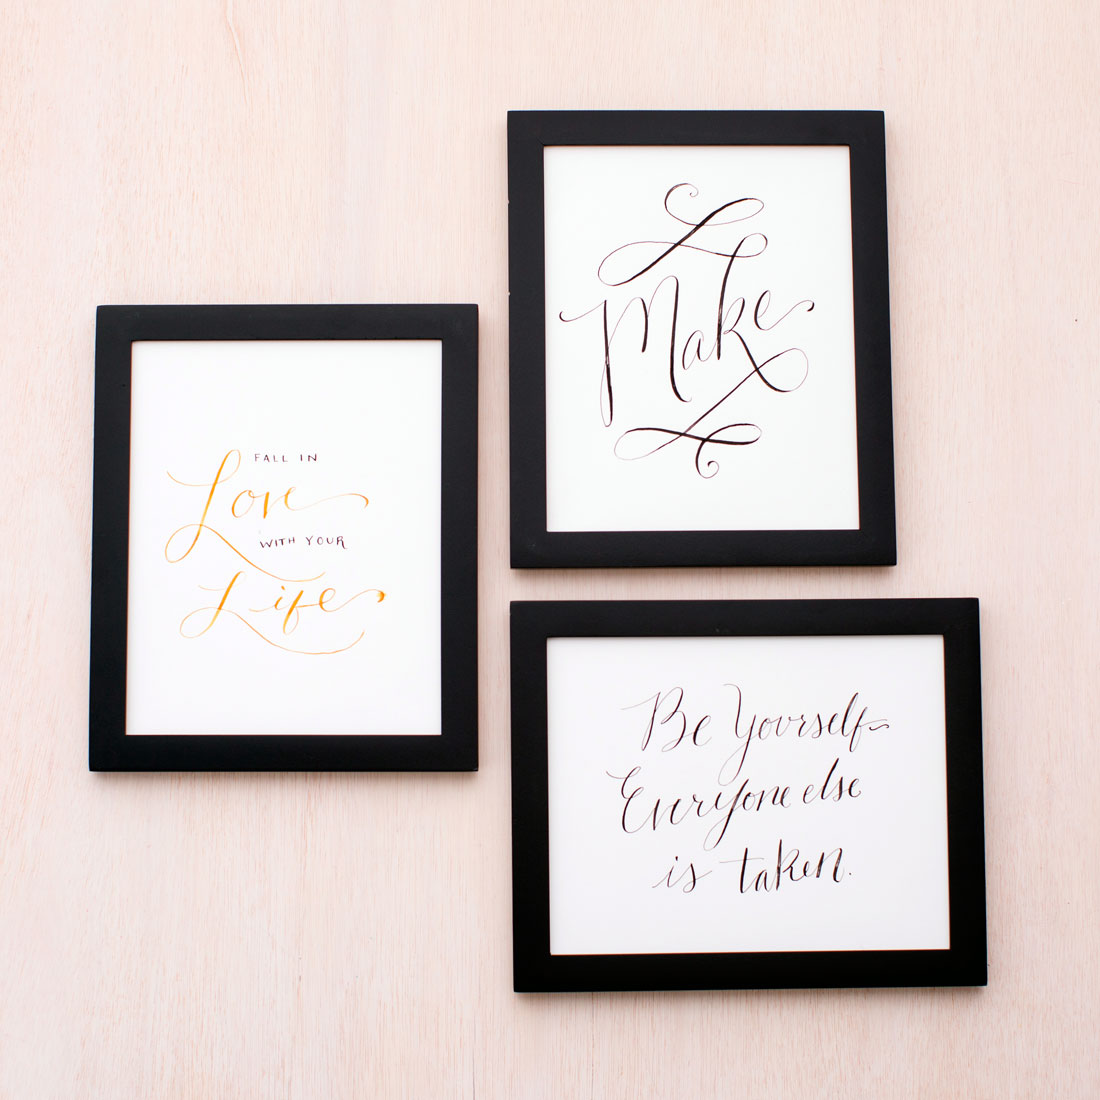 How to make calligraphy wall art more hand drawn